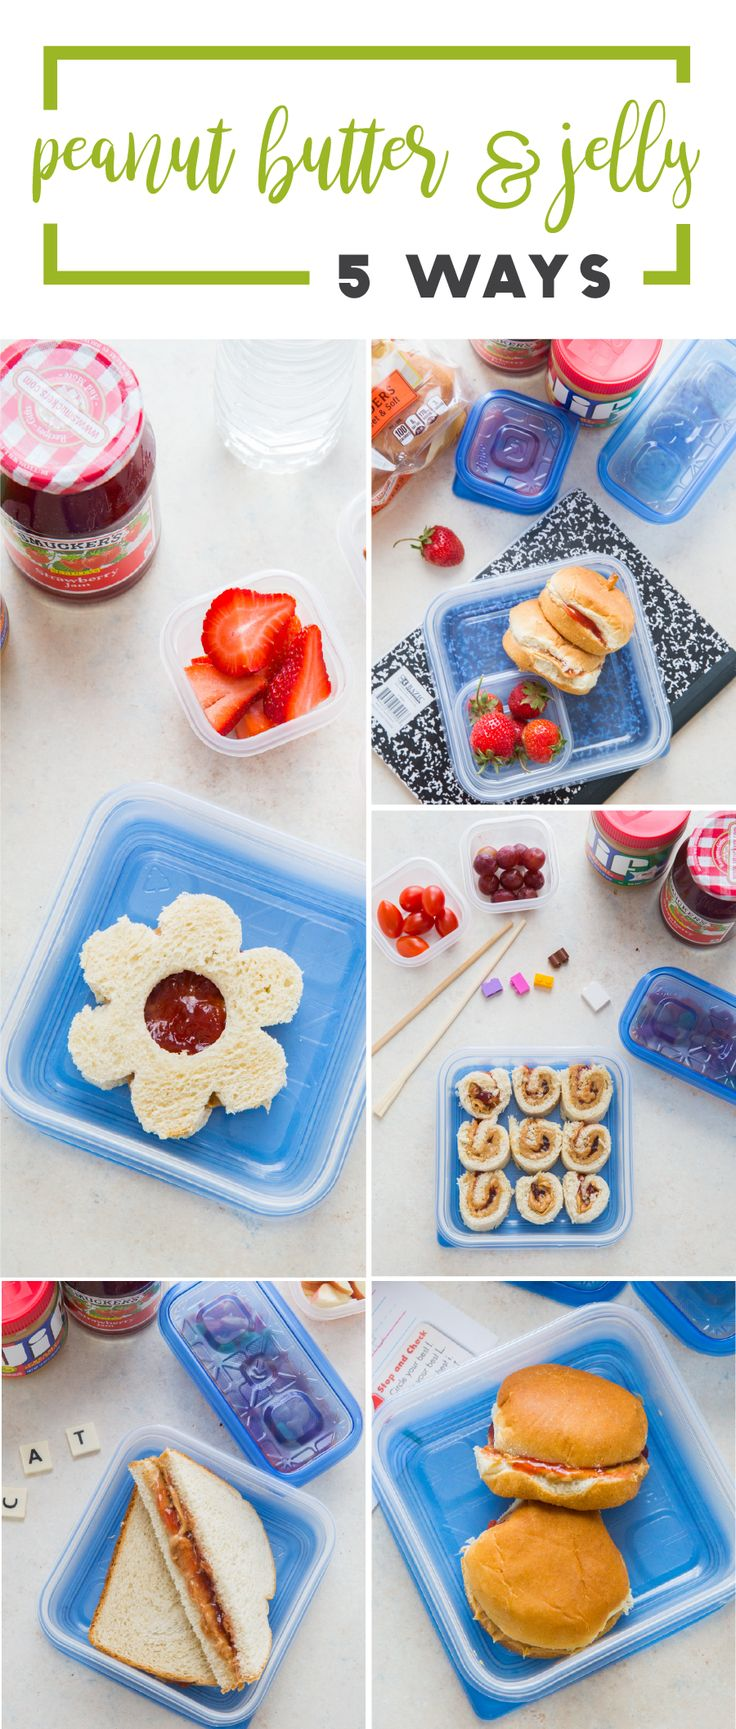 You can't go wrong with PB & J! Check out new ways to serve this classic lunch idea to your kids during back-to-school with help from this collection of 5 Peanut Butter and Jelly Recipes. Grab Pepperidge Farm® Whole Grain White Bread, Jif® Peanut Butter, Smucker's® Seedless Strawberry Jam, Ziploc® brand containers, and anything else you may need for meal prep inspiration at Meijer!